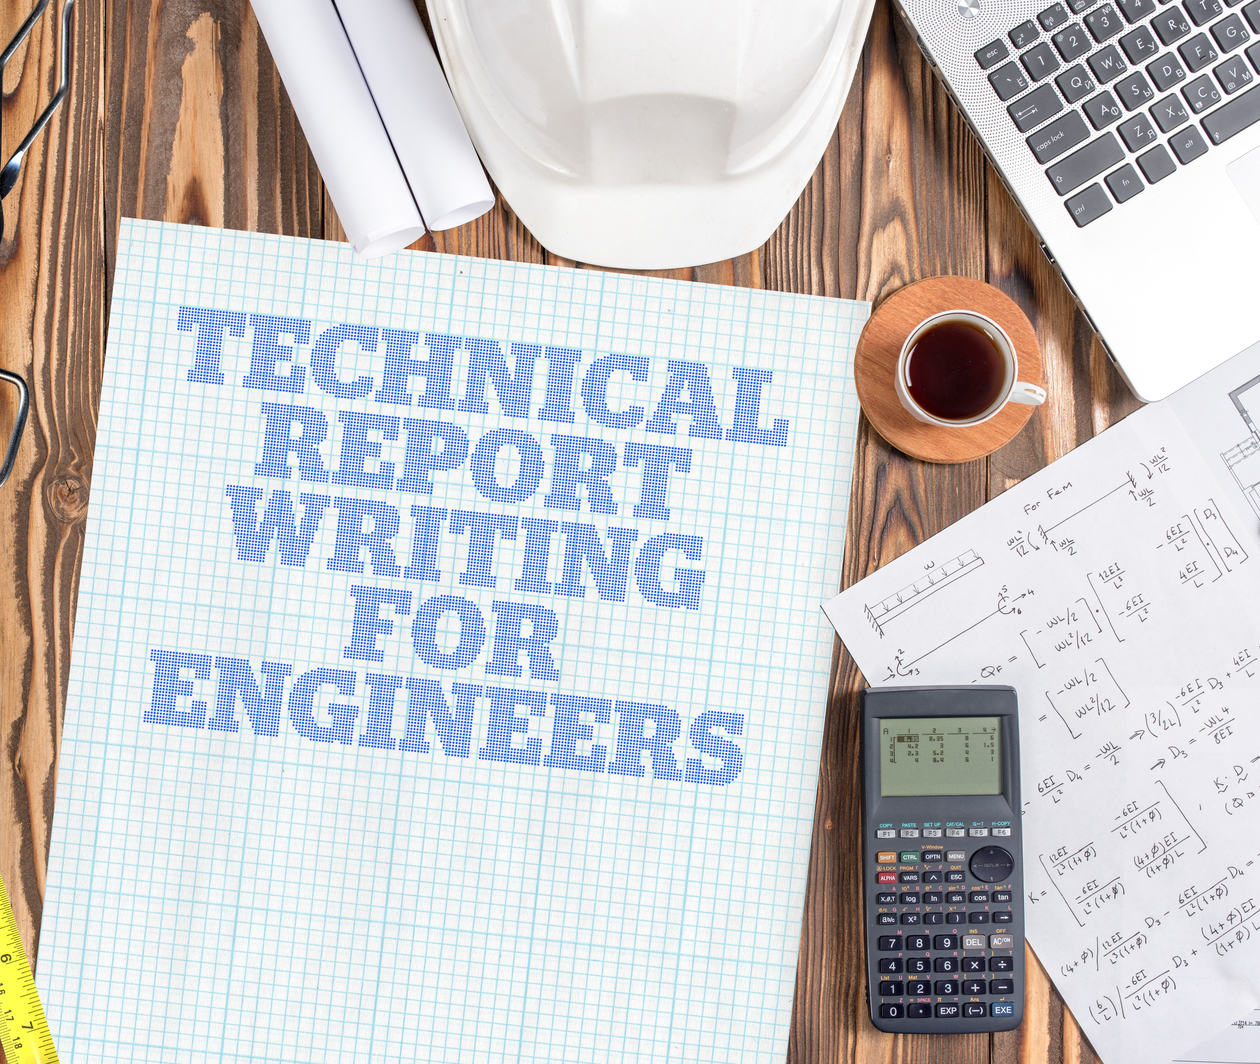 Technical Report Writing for Engineers